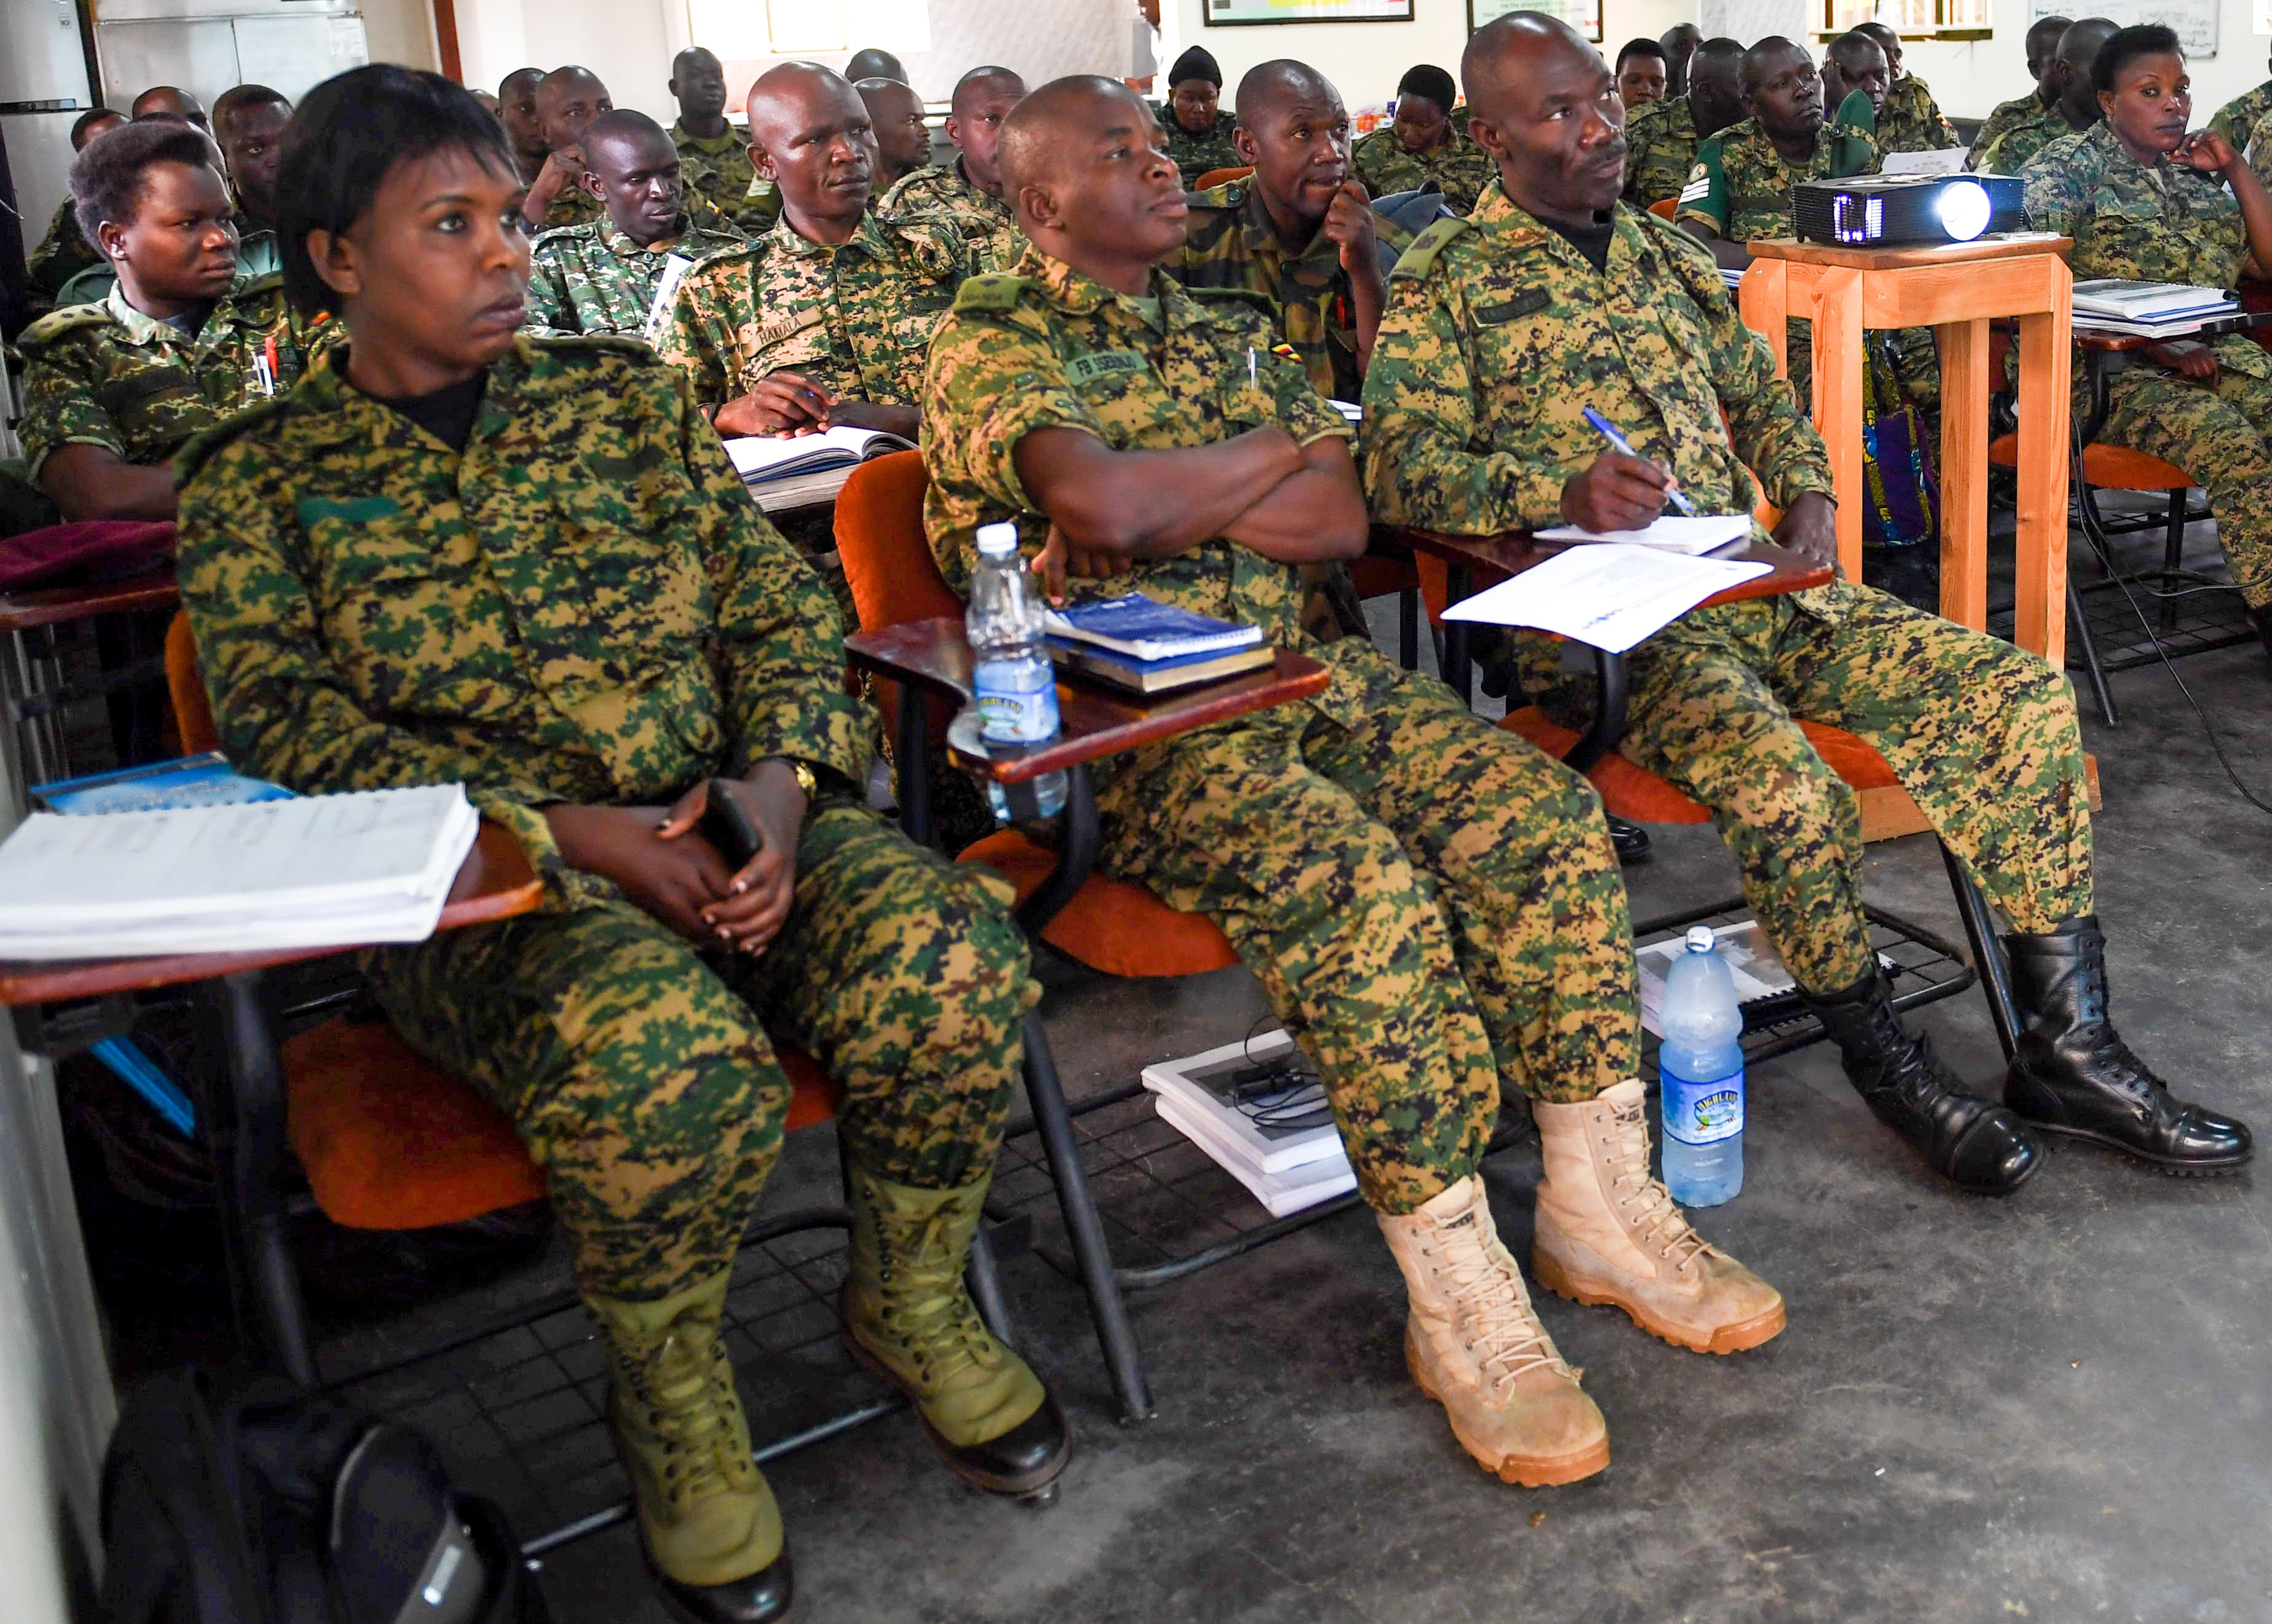 Uganda Peoples' Defence Force soldiers listen intently during a training brief in Entebee, Uganda, July 11, 2018.  The training is designed to enhance the UPDF's capability and capacity to the African Union Mission in Somalia. (U.S. Air Force photo by Senior Airman Haley D. Phillips)